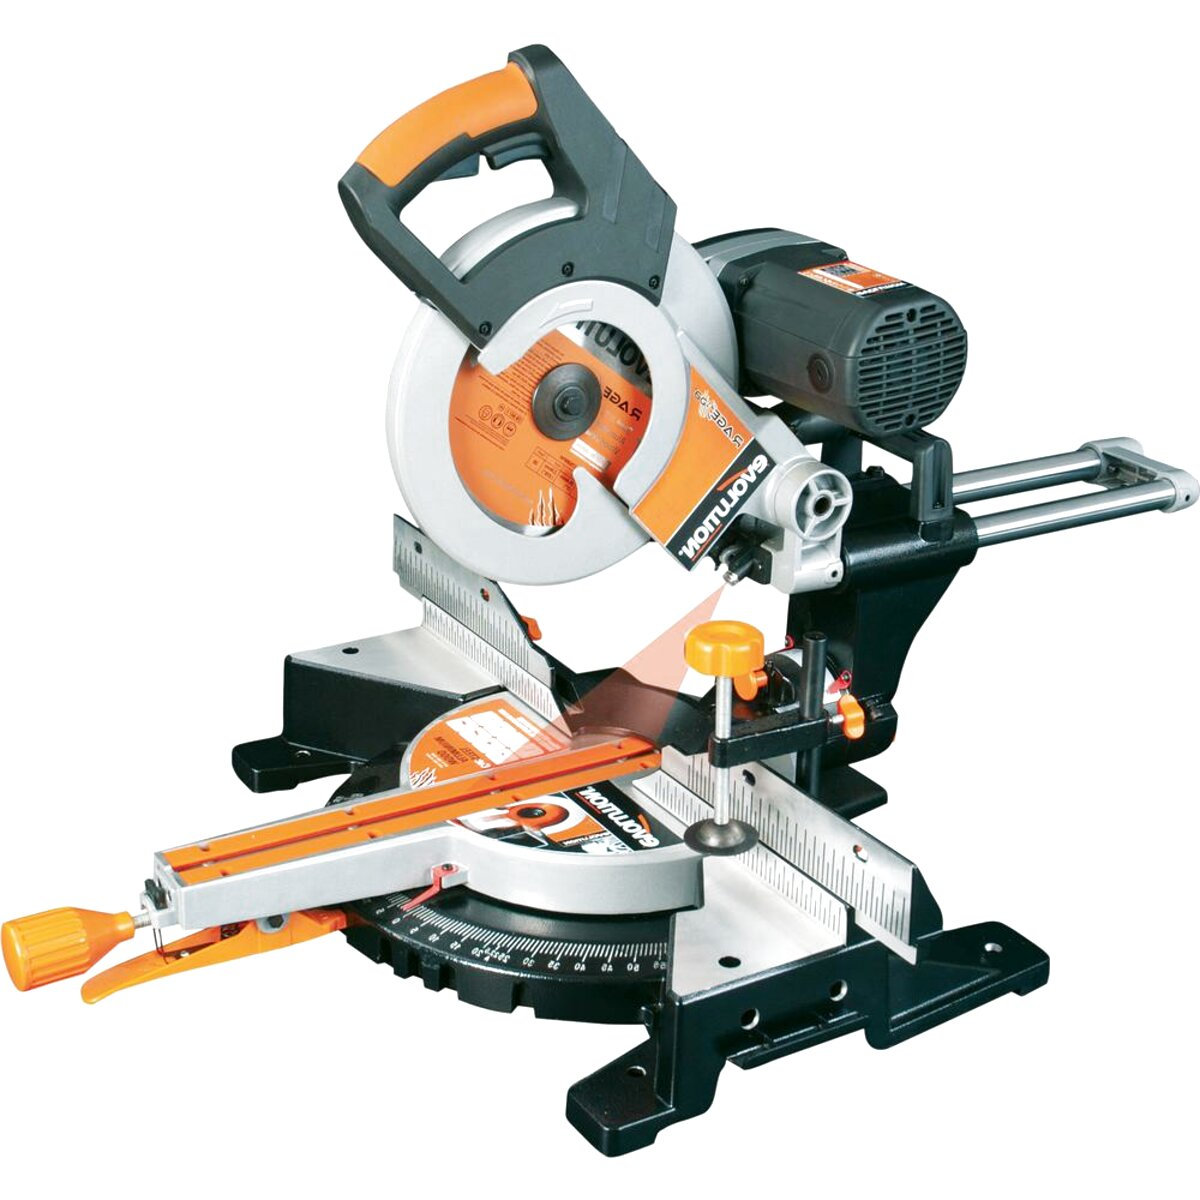 Evolution Rage Mitre Saw for sale in UK   View 63 ads